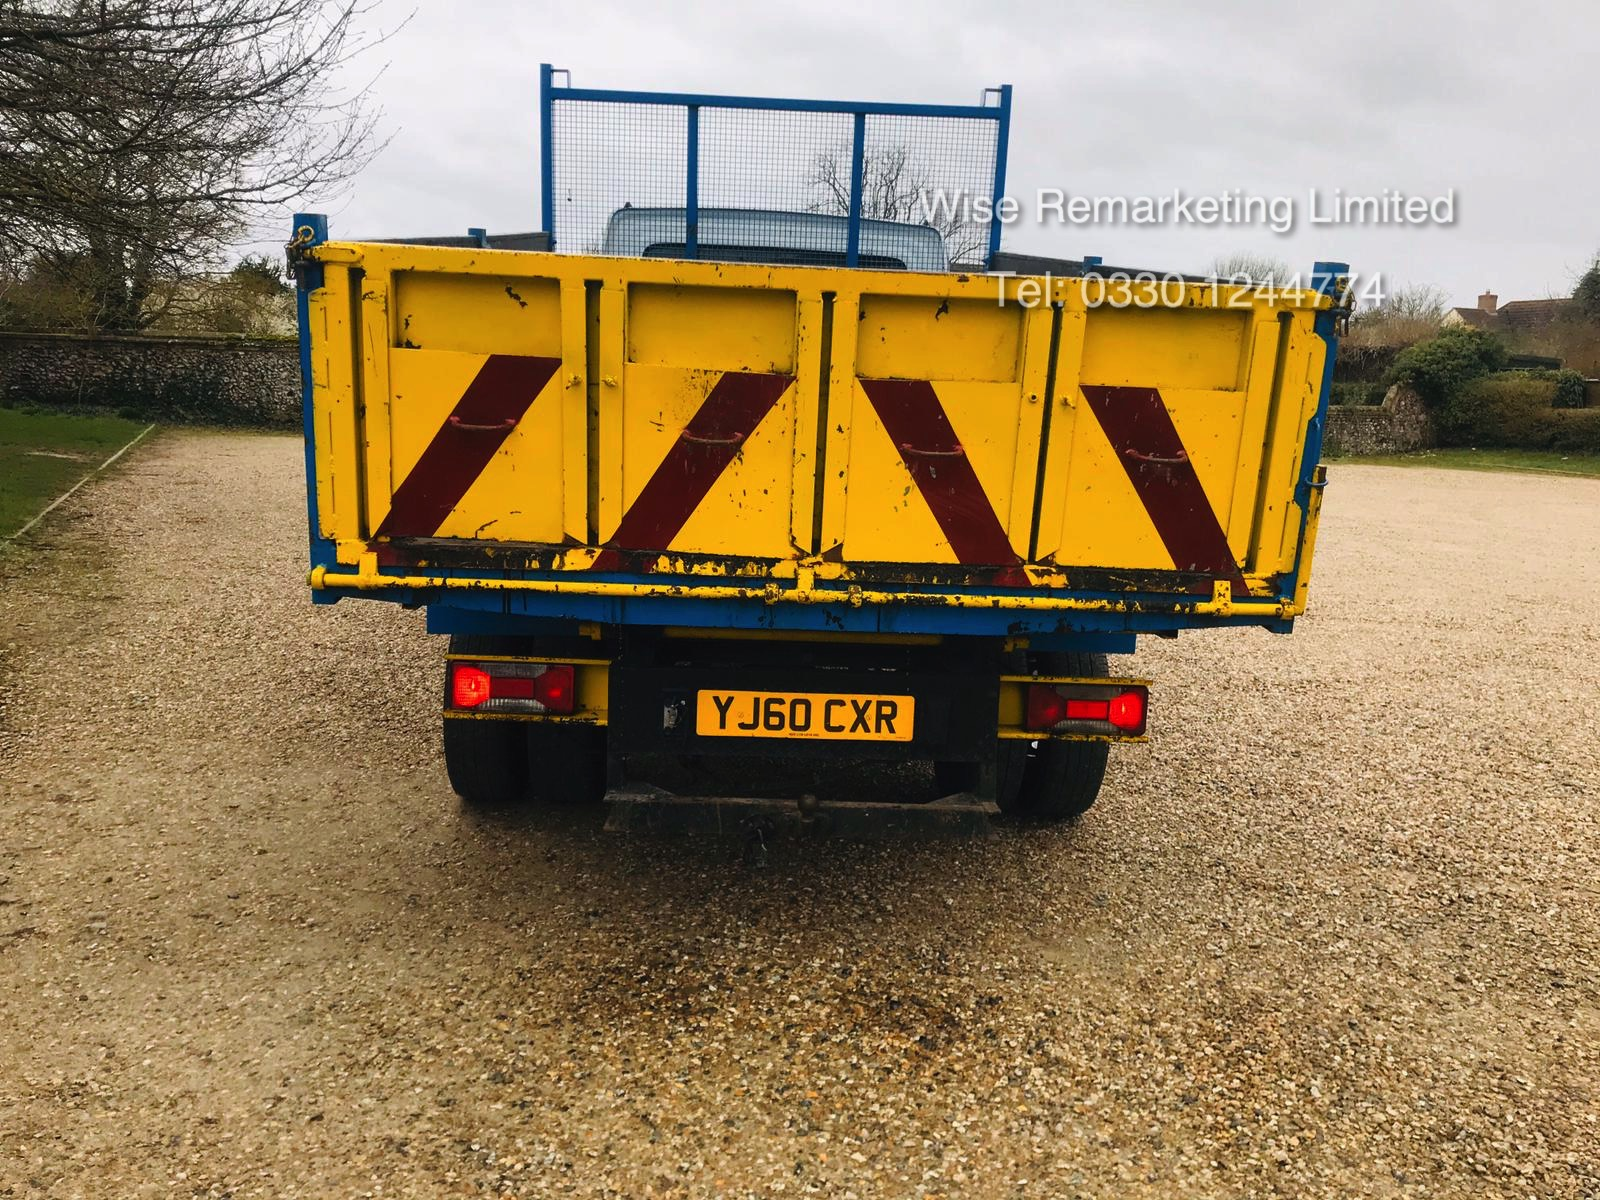 Iveco Daily 3.0 TD 60C18 Tipper (Twin Wheeler) - 6 Speed - 2011 Model - 1 Keeper SAVE 20% NO VAT - Image 6 of 18